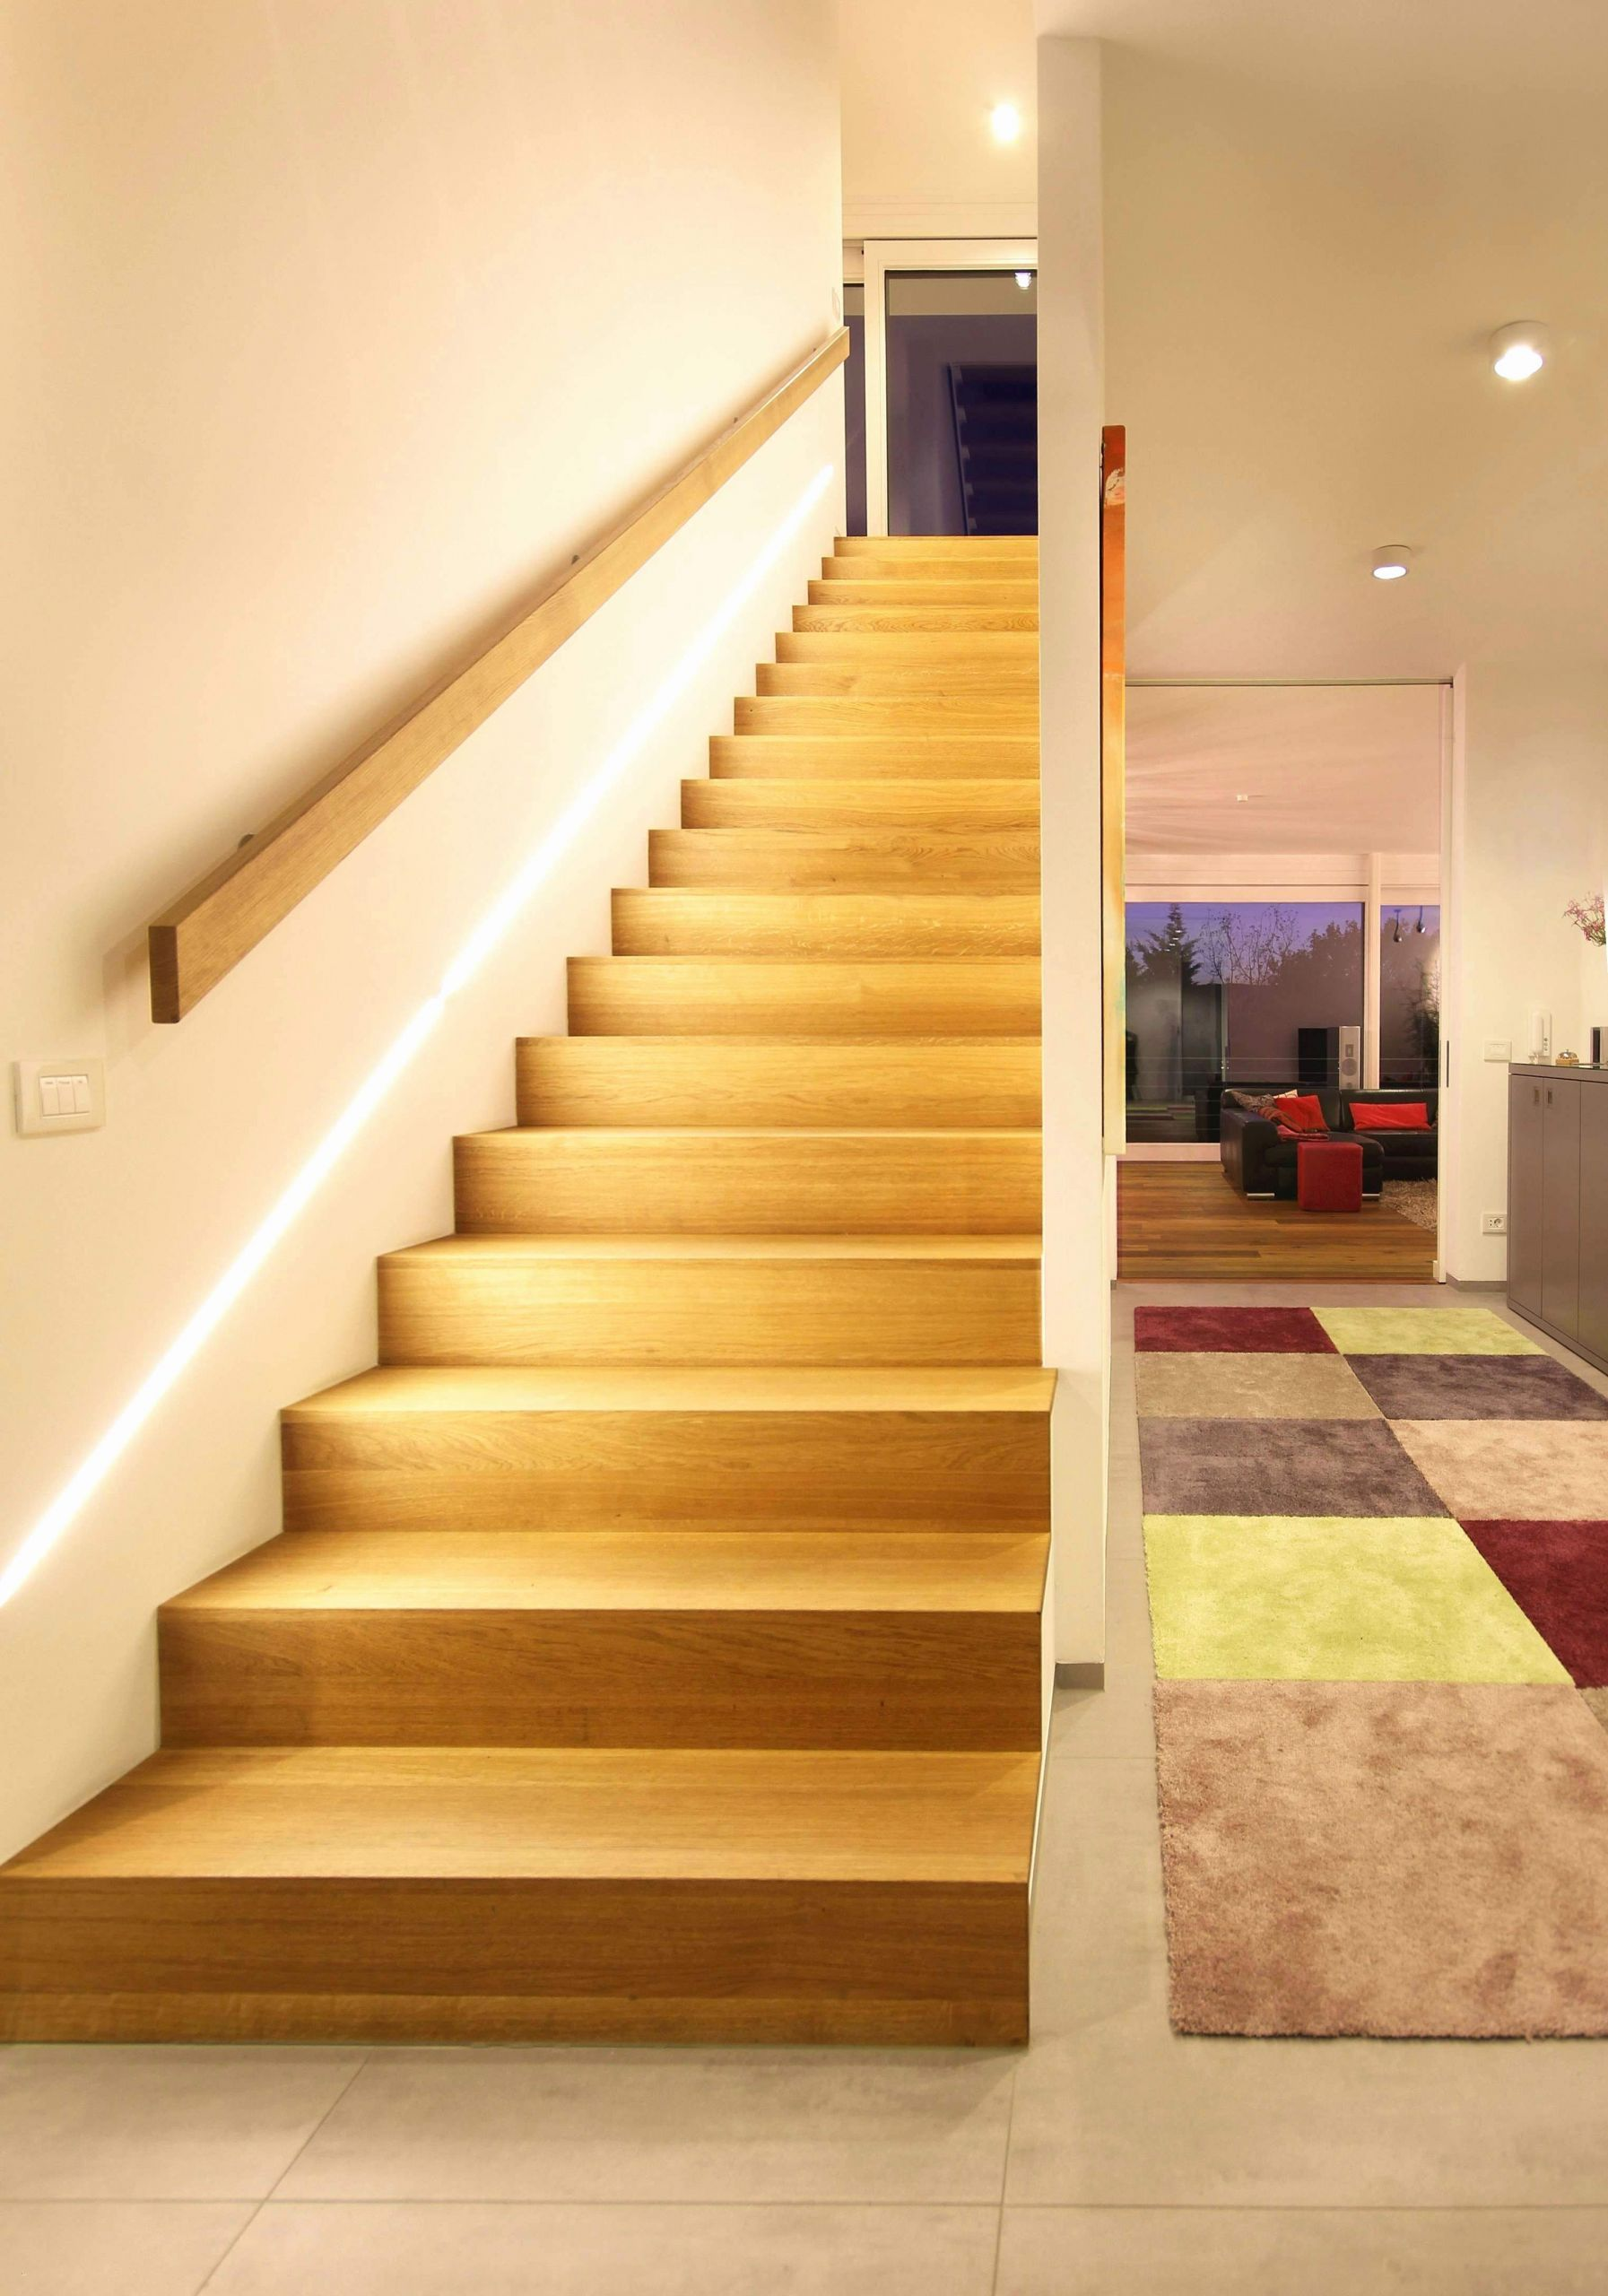 contemporary stair railings interior beautiful gallery strahler decke einzigartig led lampen wohnzimmer led strahler decke of contemporary stair railings interior